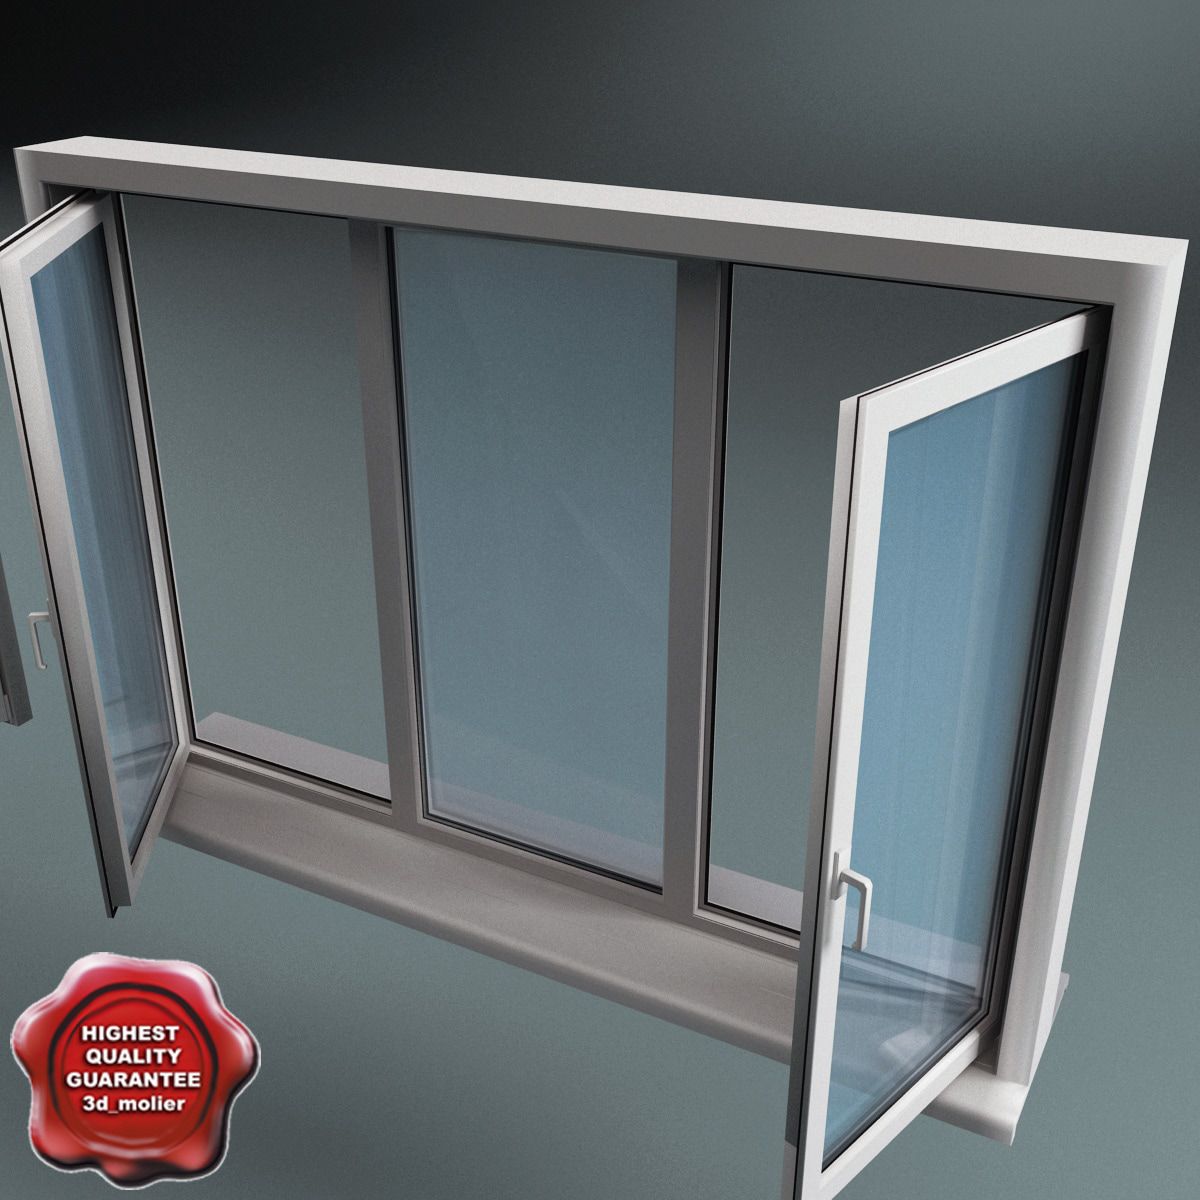 Plastic window v3 3d model for Window plastic